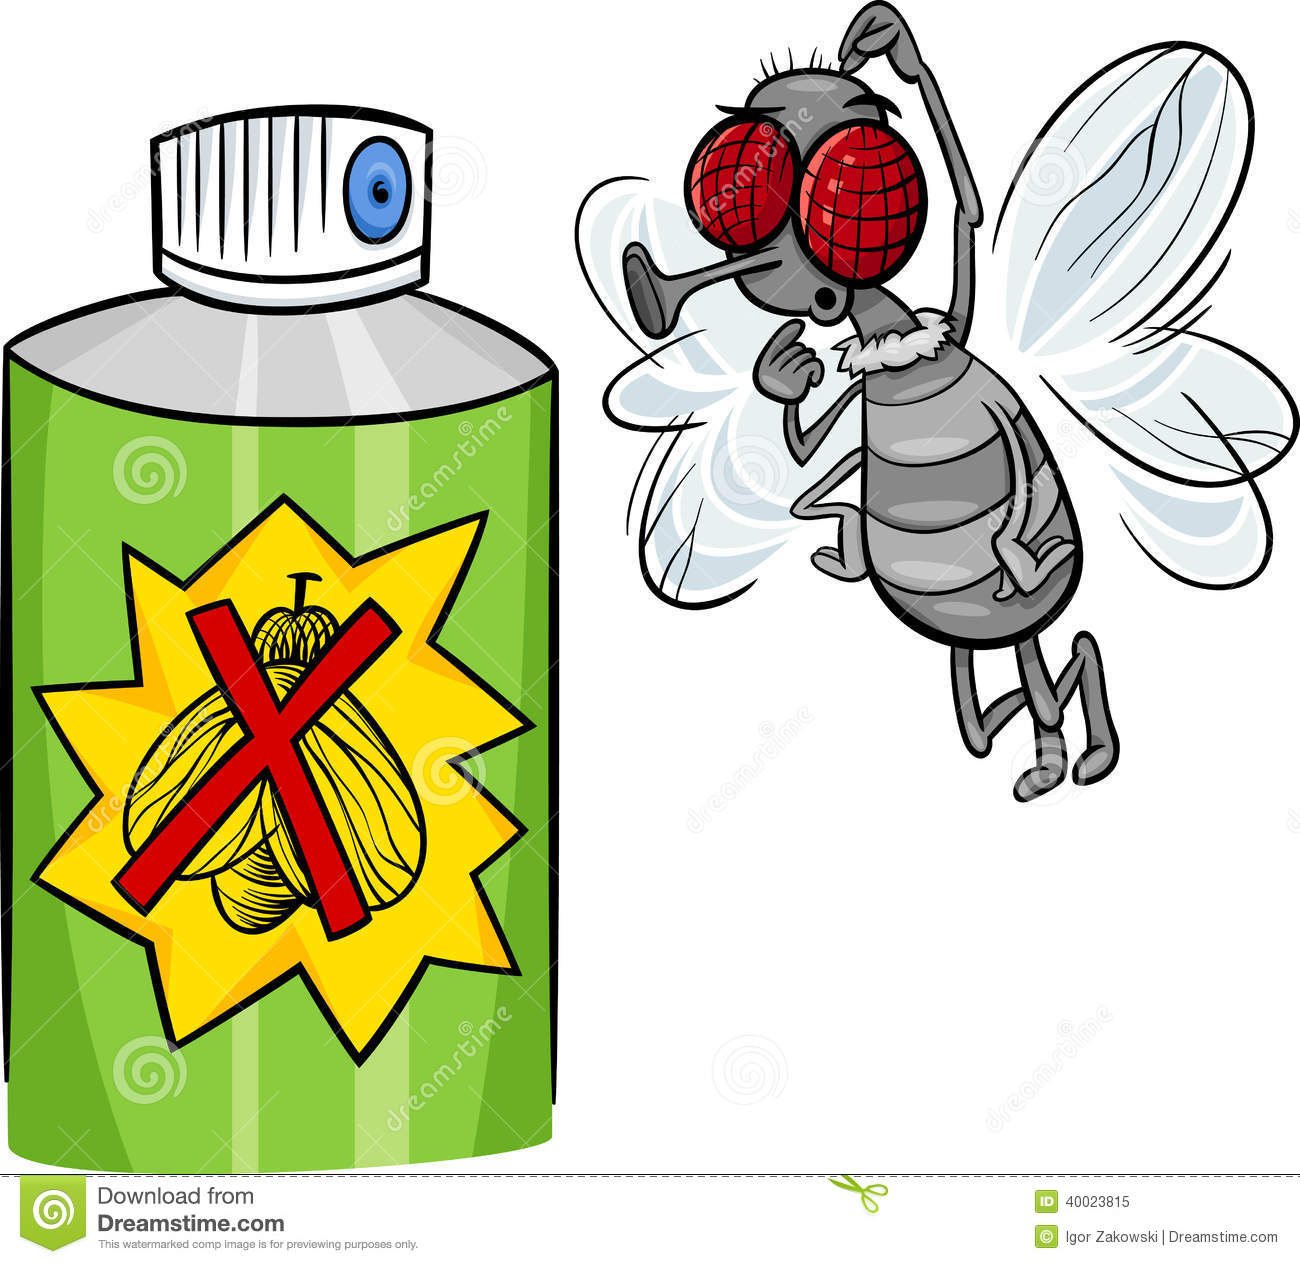 Insect spray clipart character.